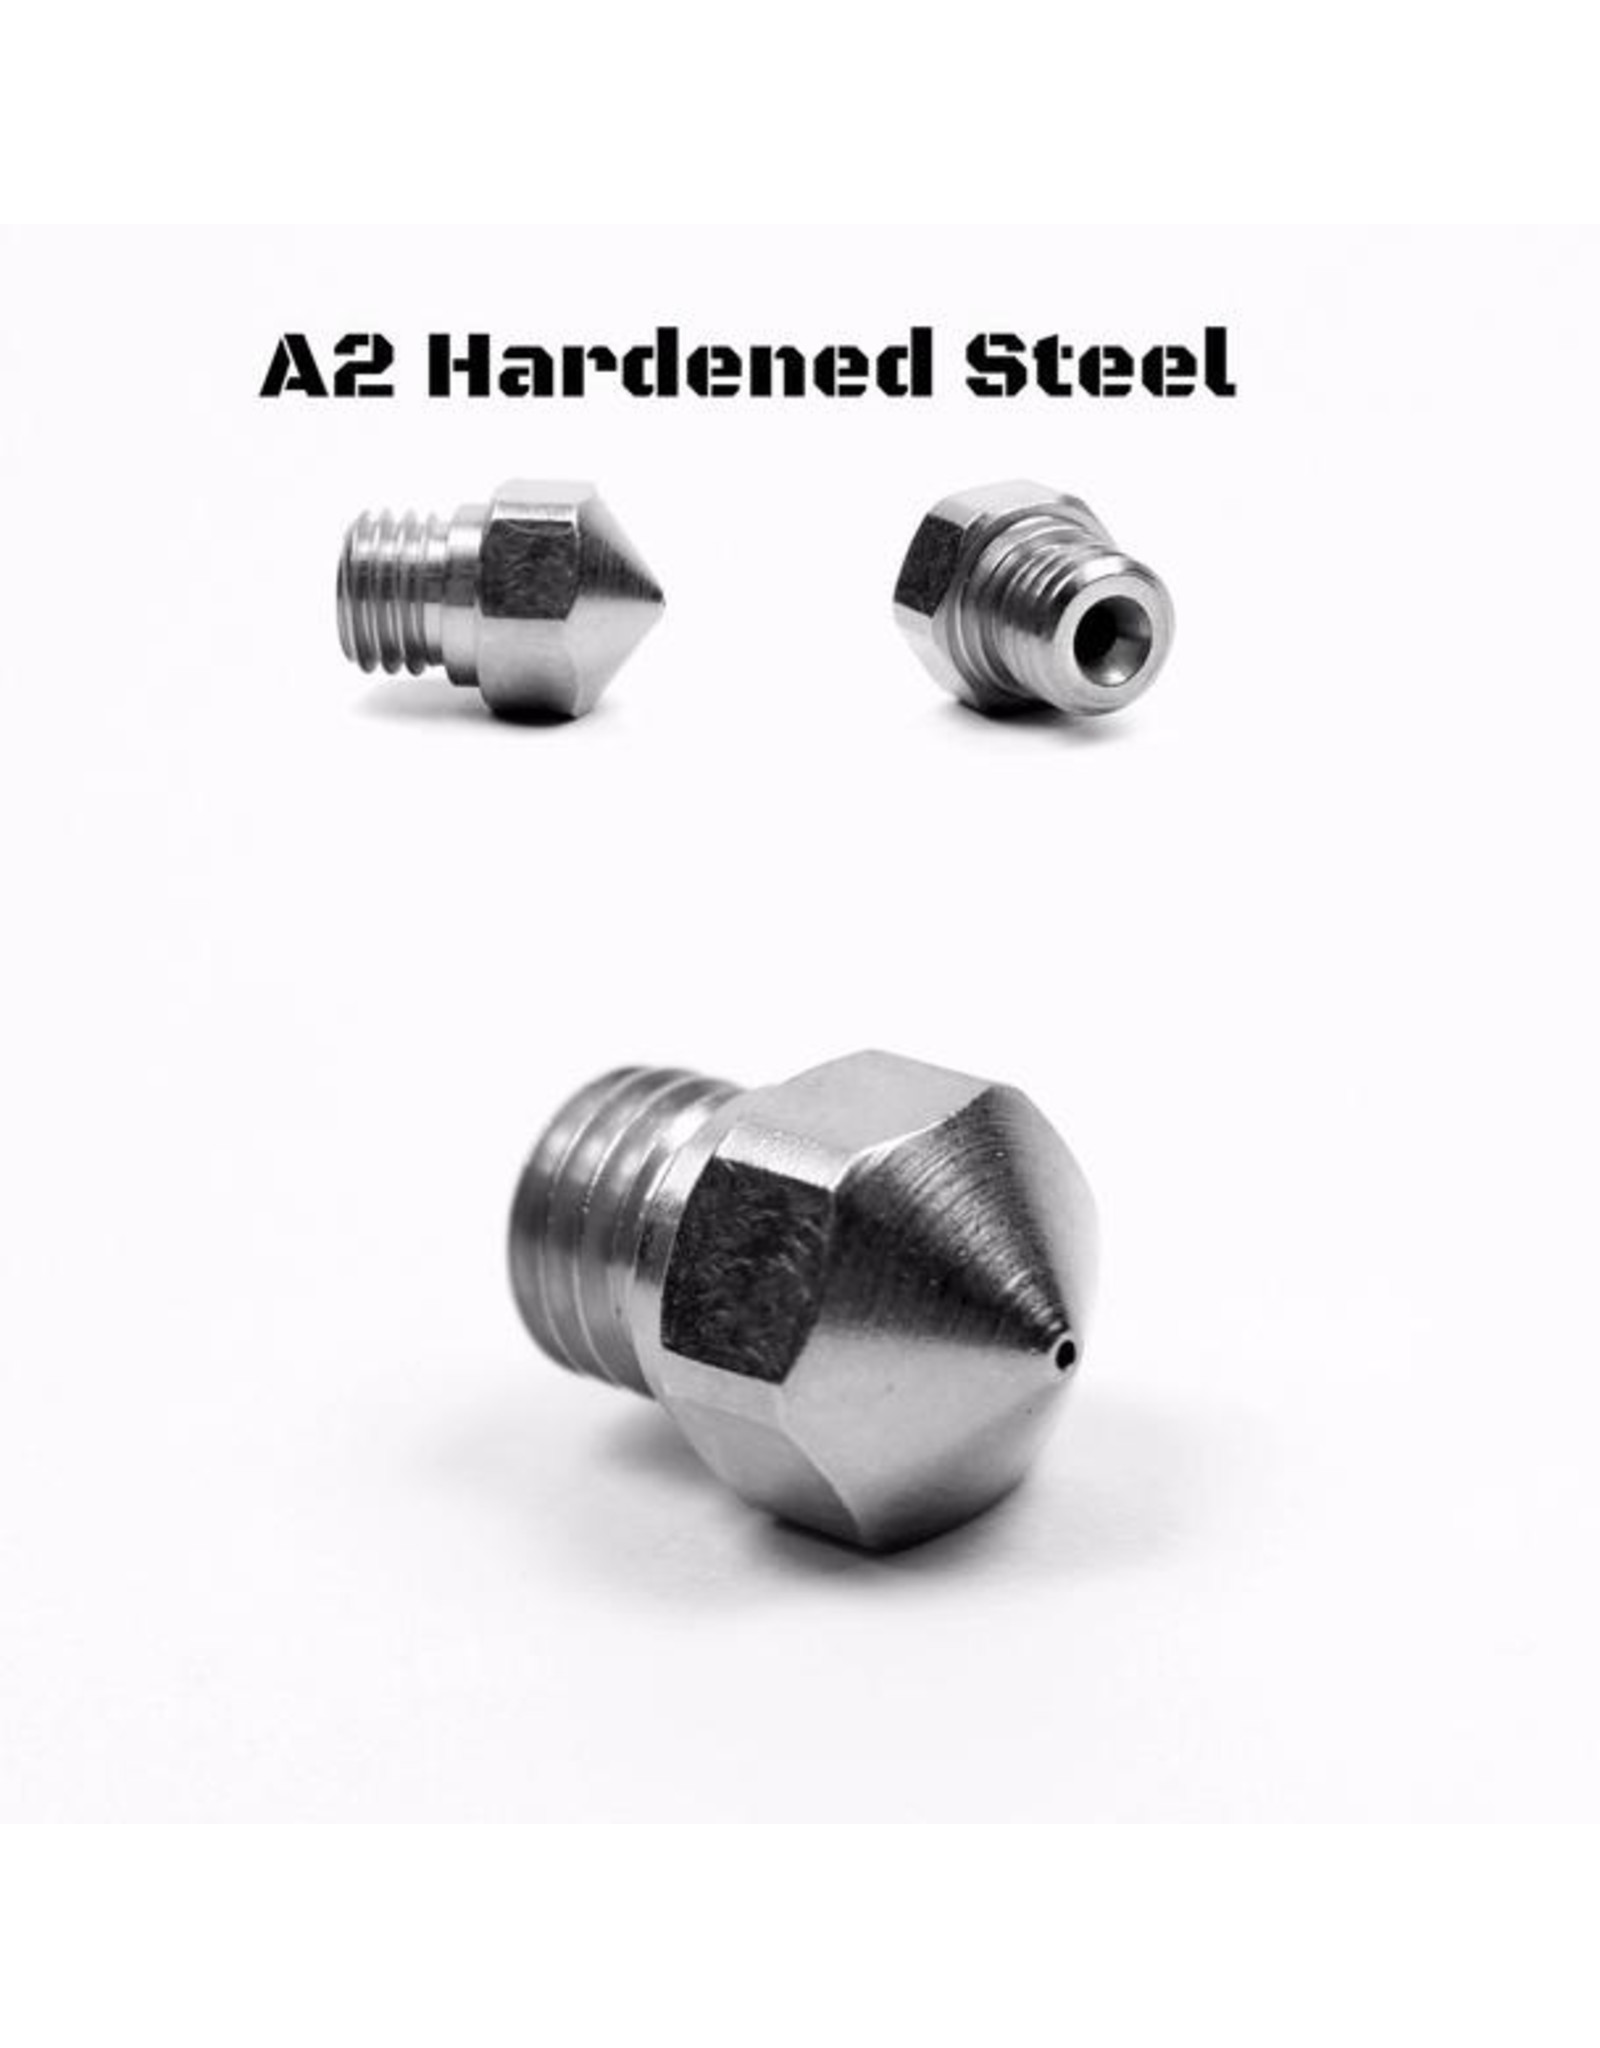 Micro Swiss Micro Swiss nozzle for MK10 All Metal Hotend Kit ONLY (Plated A2 Hardened Tool Steel)